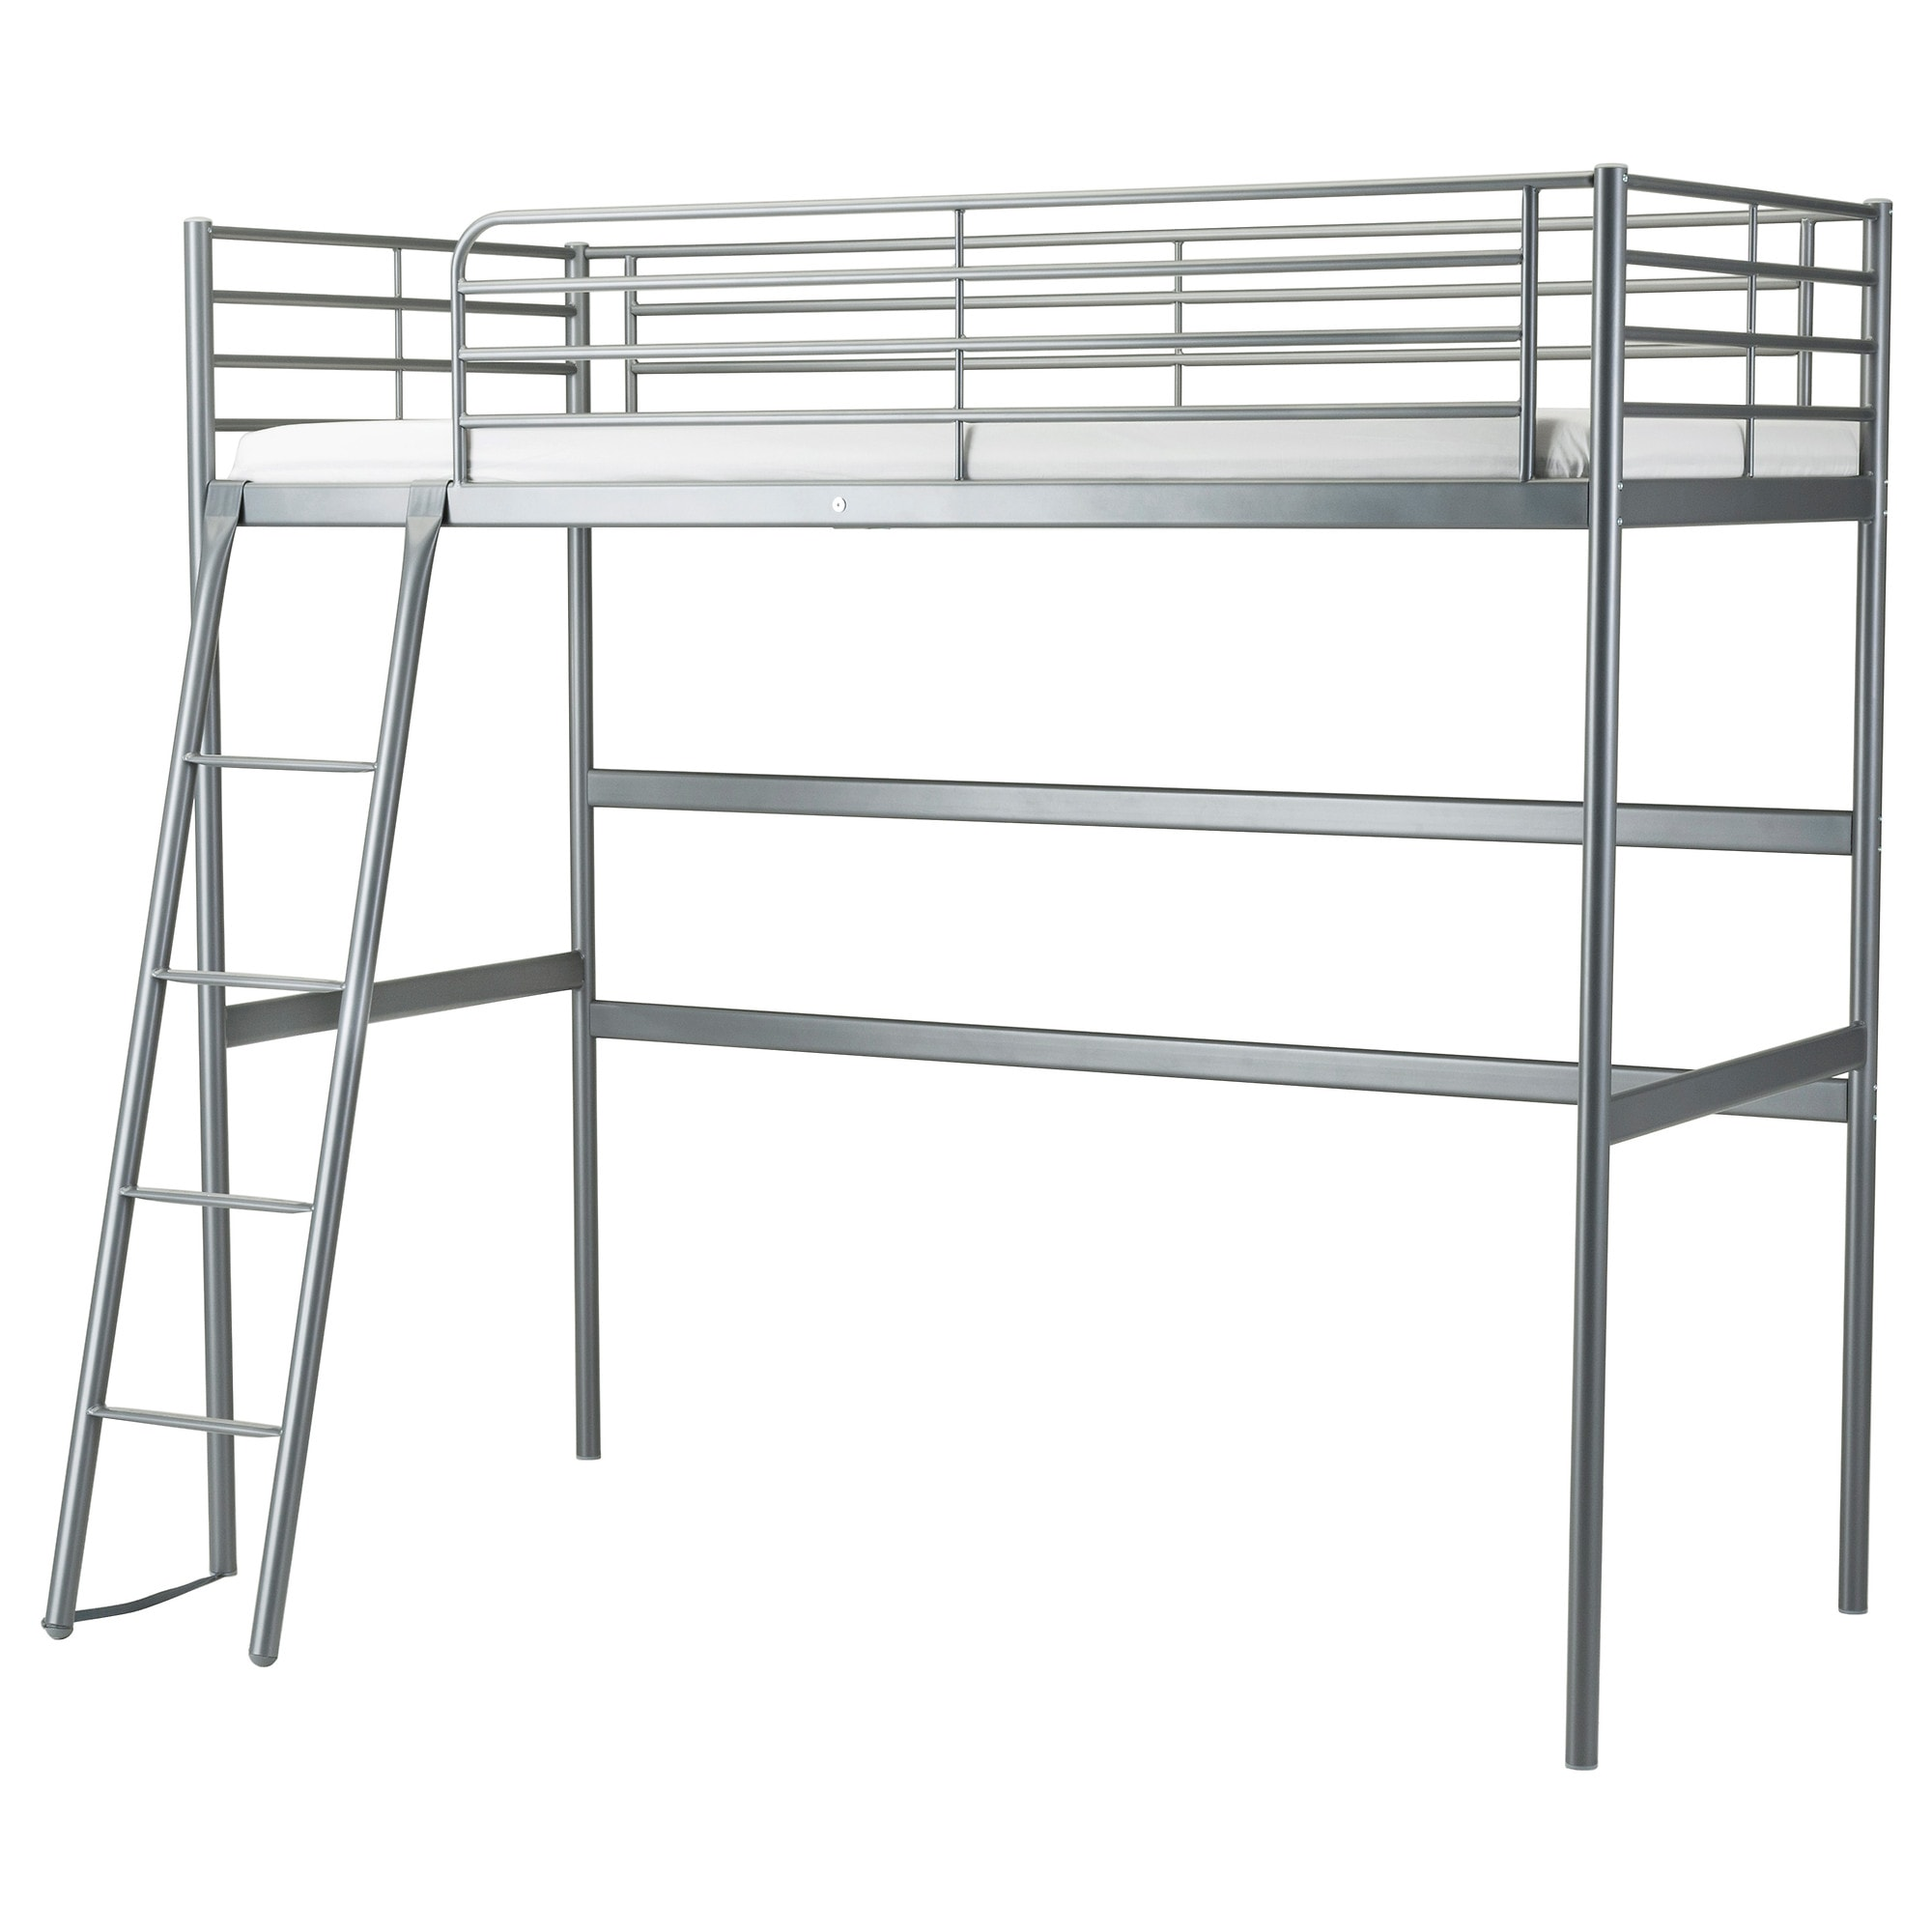 Bunk bed with desk underneath ikea - Sv Rta Loft Bed Frame Silver Color Length 78 Distance From Floor To Bed